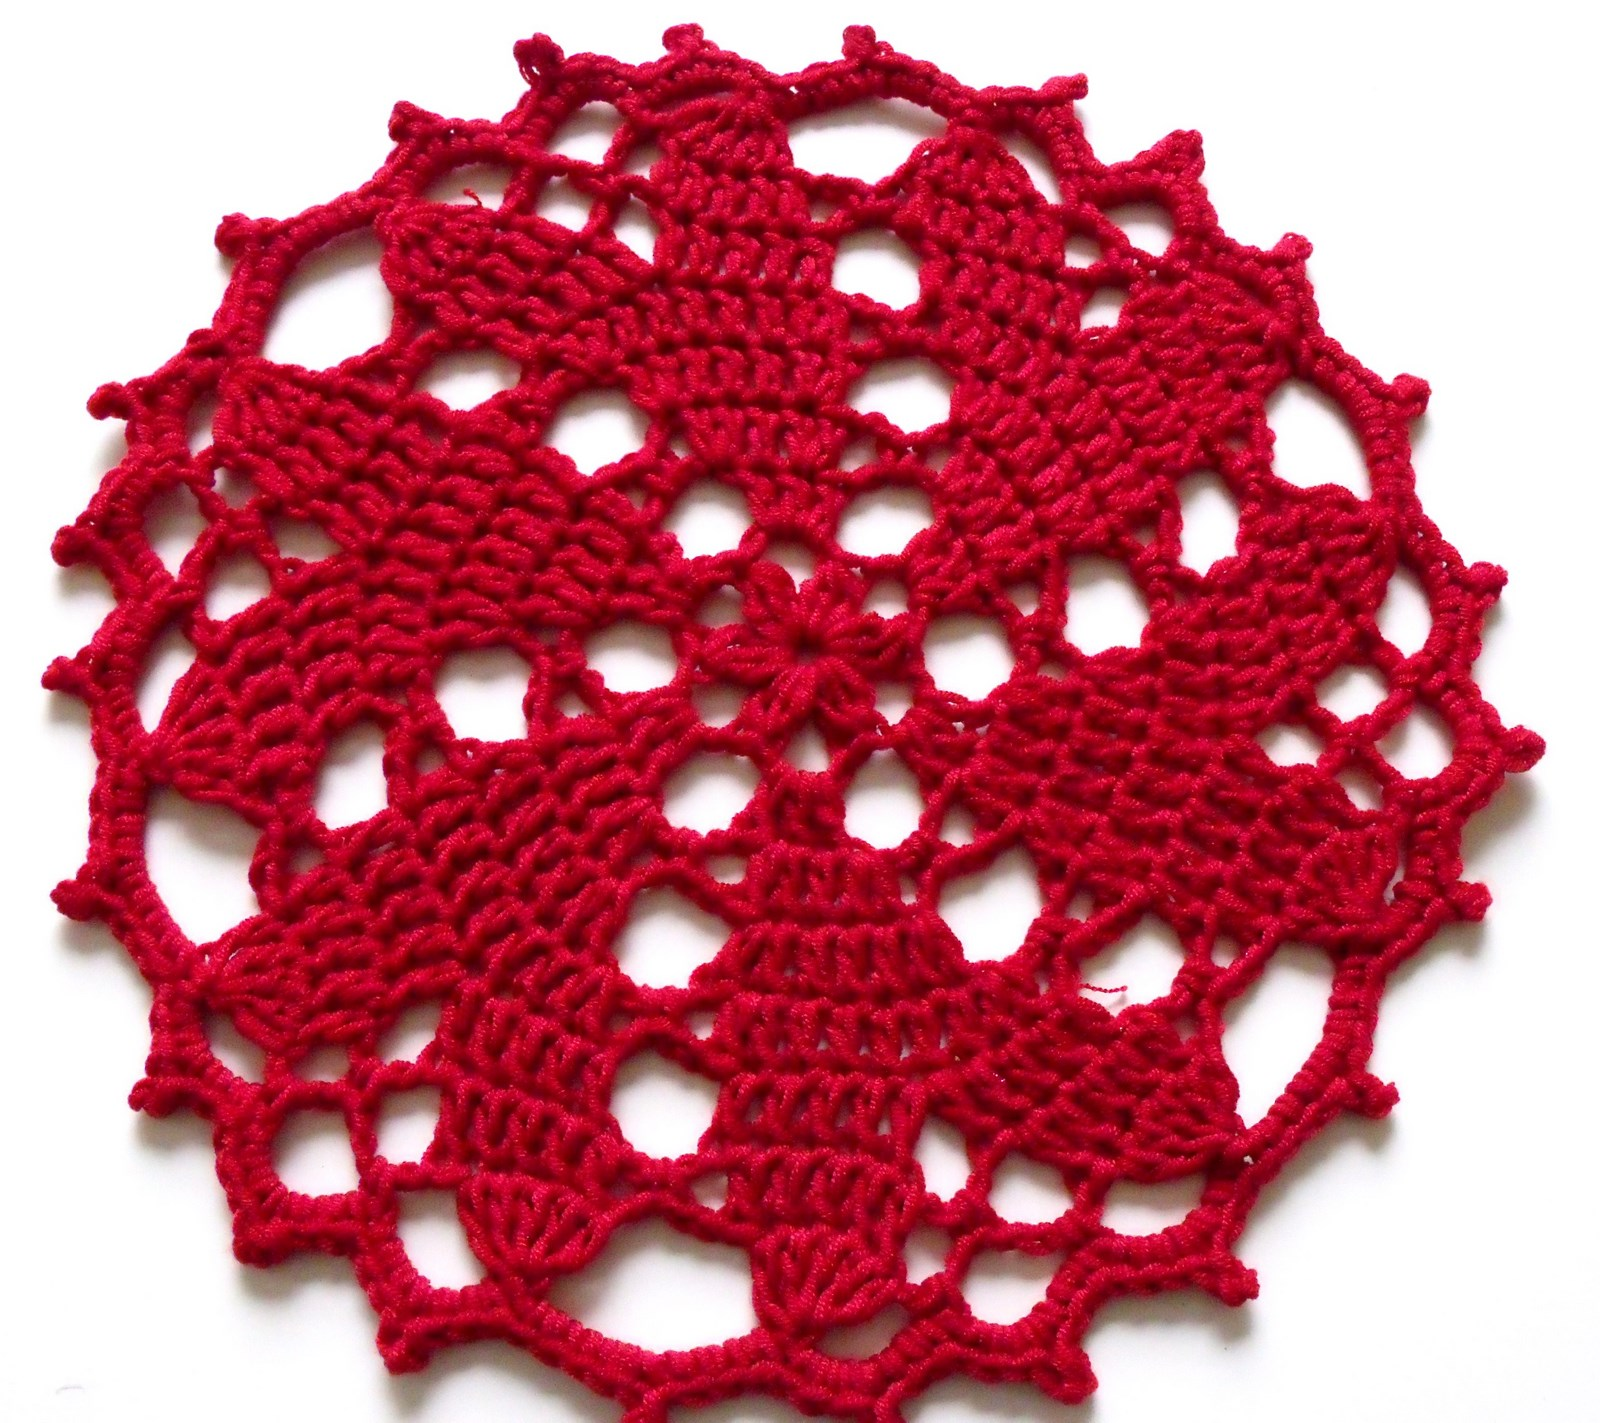 Microcknit creations mandala of hearts love love love free crochet patterns hearts mandalas doilies bankloansurffo Image collections